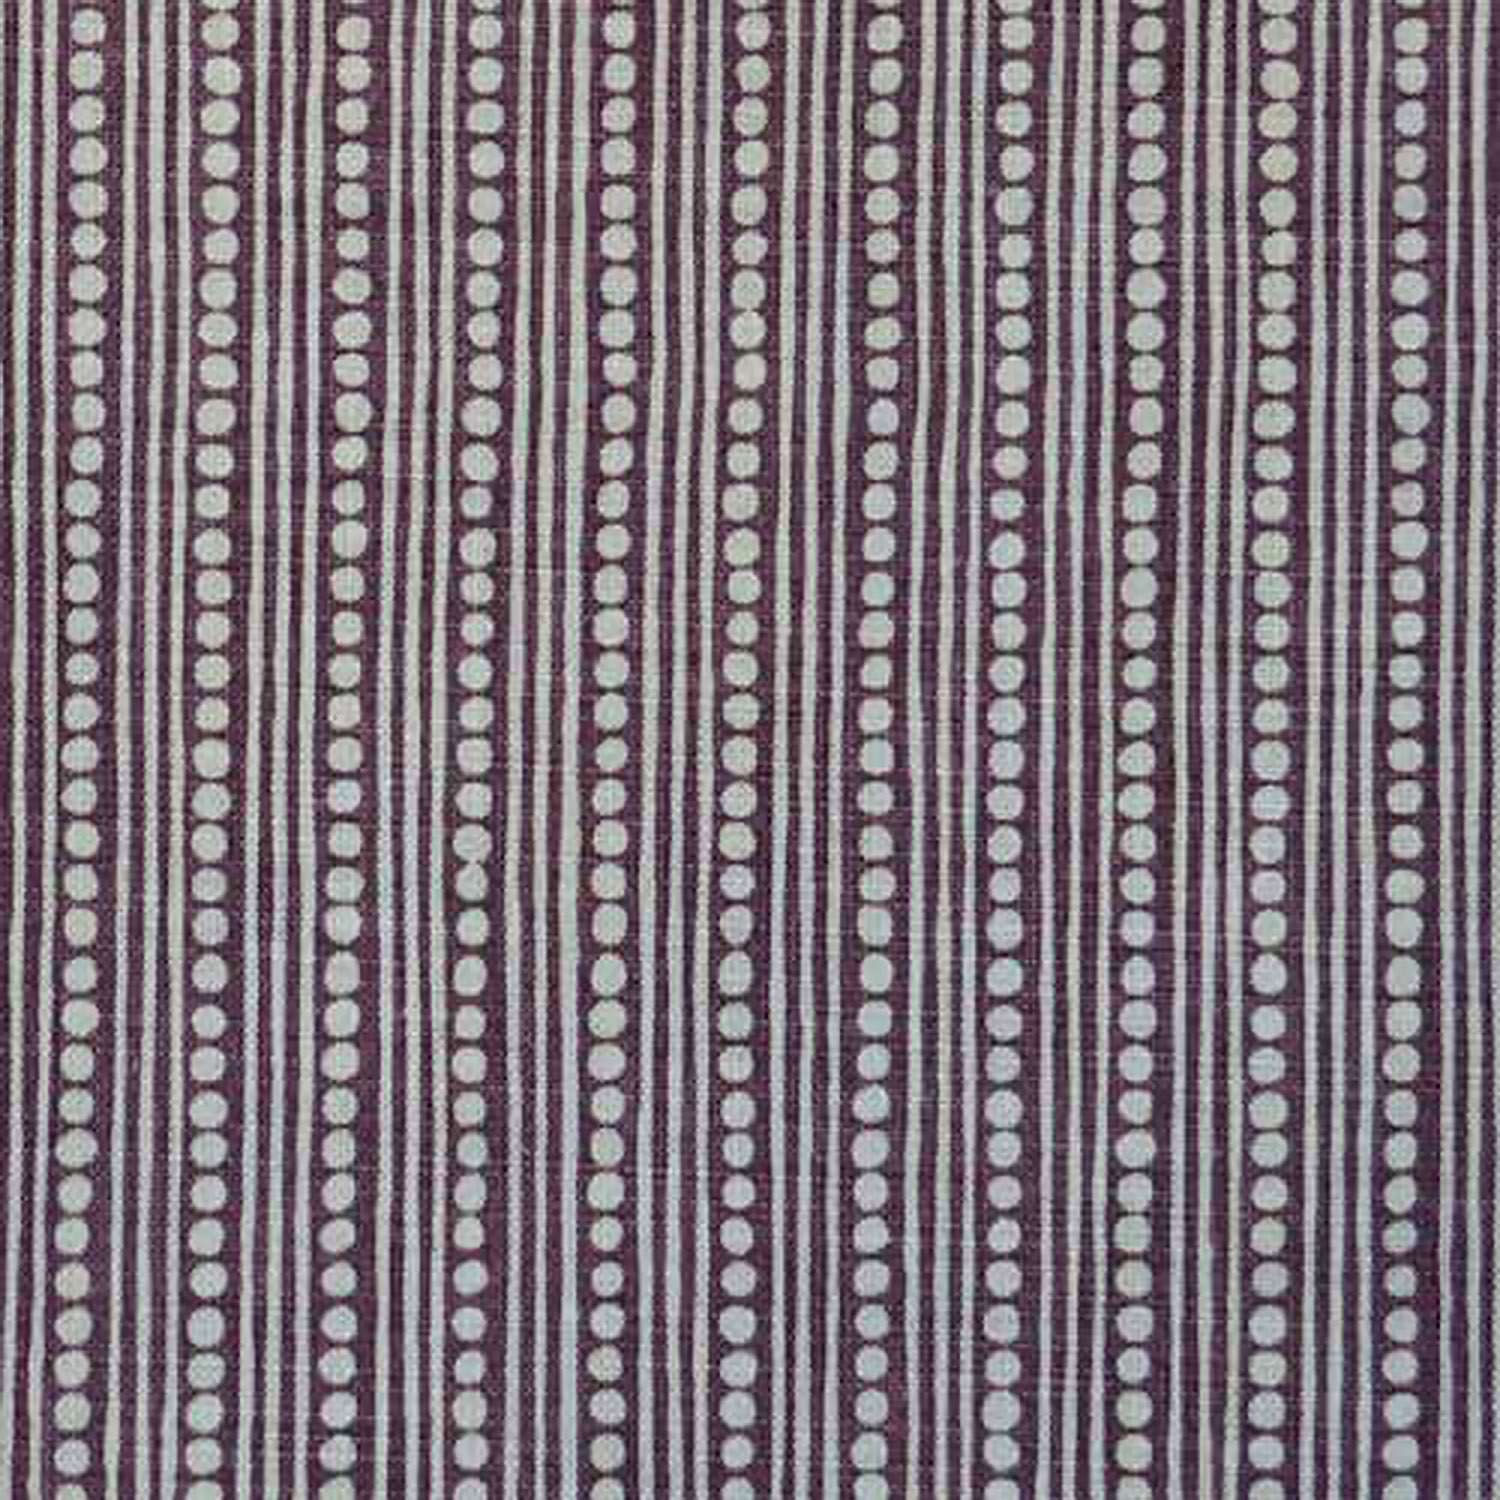 <p><strong>WICKLEWOOD</strong>aubergine/rustic/linen 3940-01<a href=/collection-1/wicklewood-aubergine-rustic-linen-3940-01>More →</a></p>